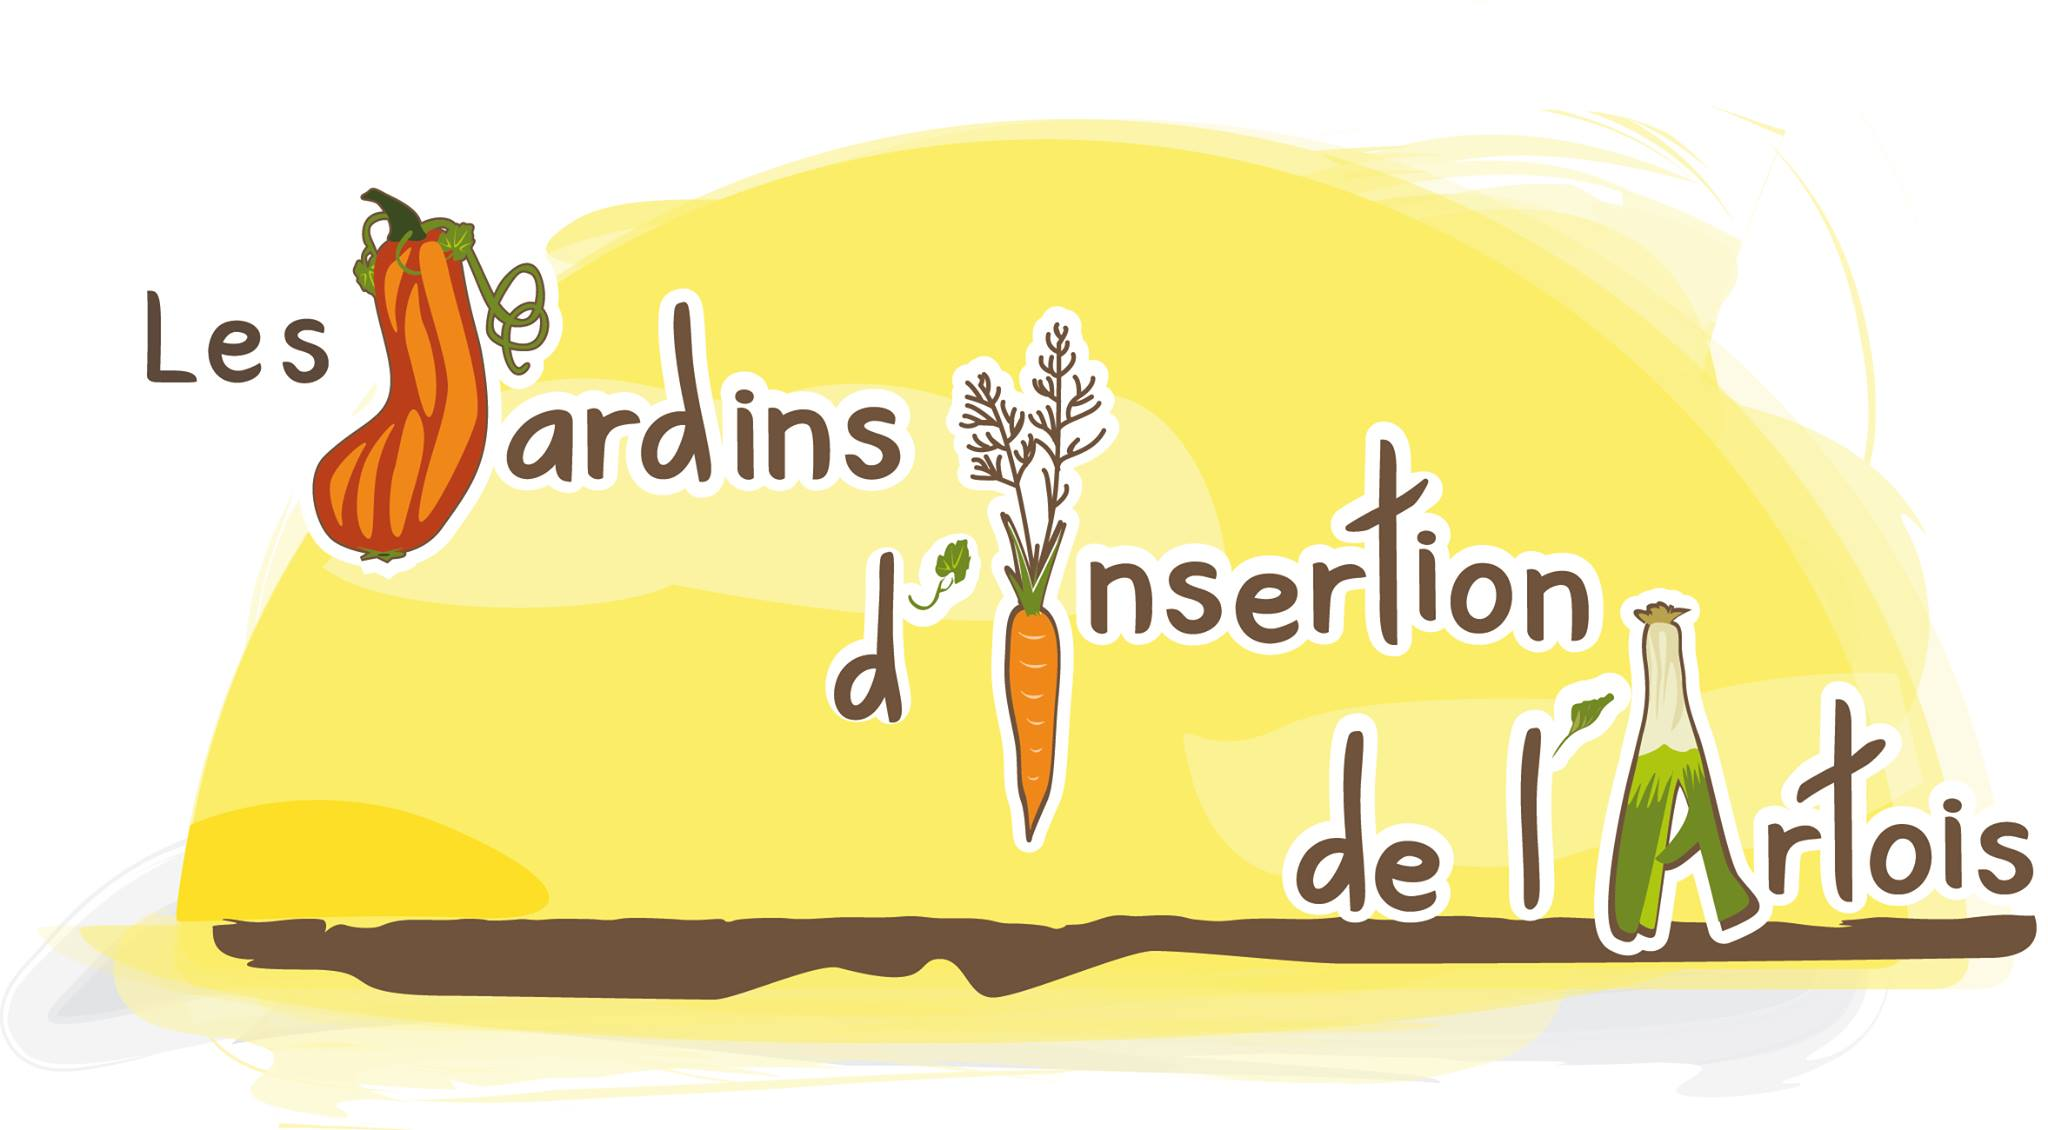 Les Jardins d'Insertion de l'Artois